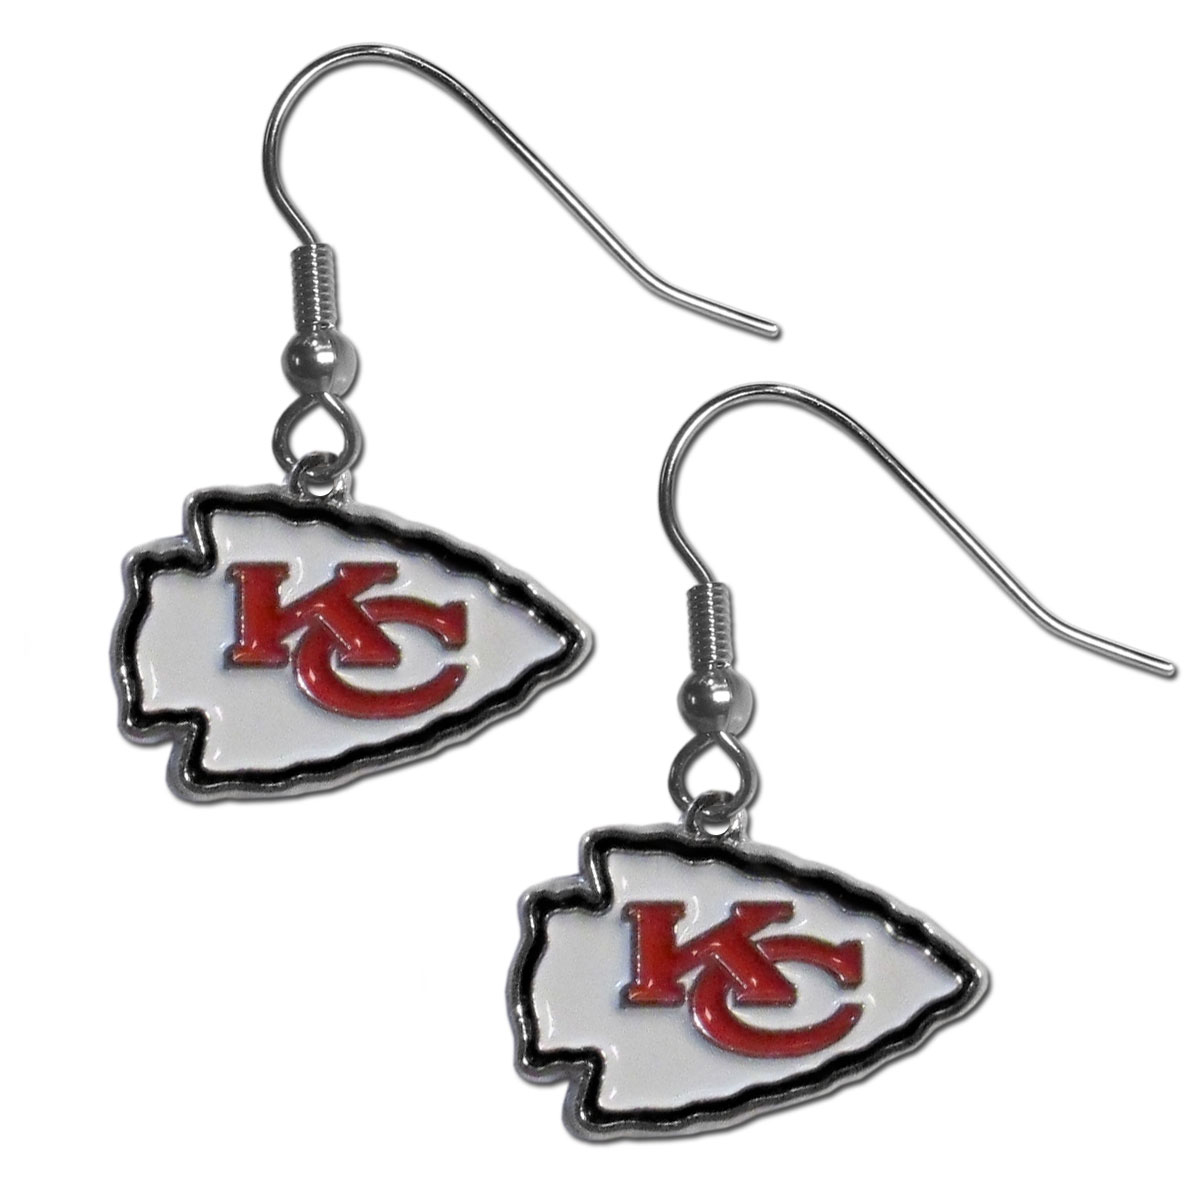 Kansas City Chiefs Chrome Dangle Earrings - Officially licensed NFL Kansas City Chiefs dangle earrings have fully cast Kansas City Chiefs charms with exceptional detail and a hand enameled finish. The Kansas City Chiefs earrings have a high polish nickel free chrome finish and hypoallergenic fishhook posts. Officially licensed NFL product Licensee: Siskiyou Buckle Thank you for visiting CrazedOutSports.com